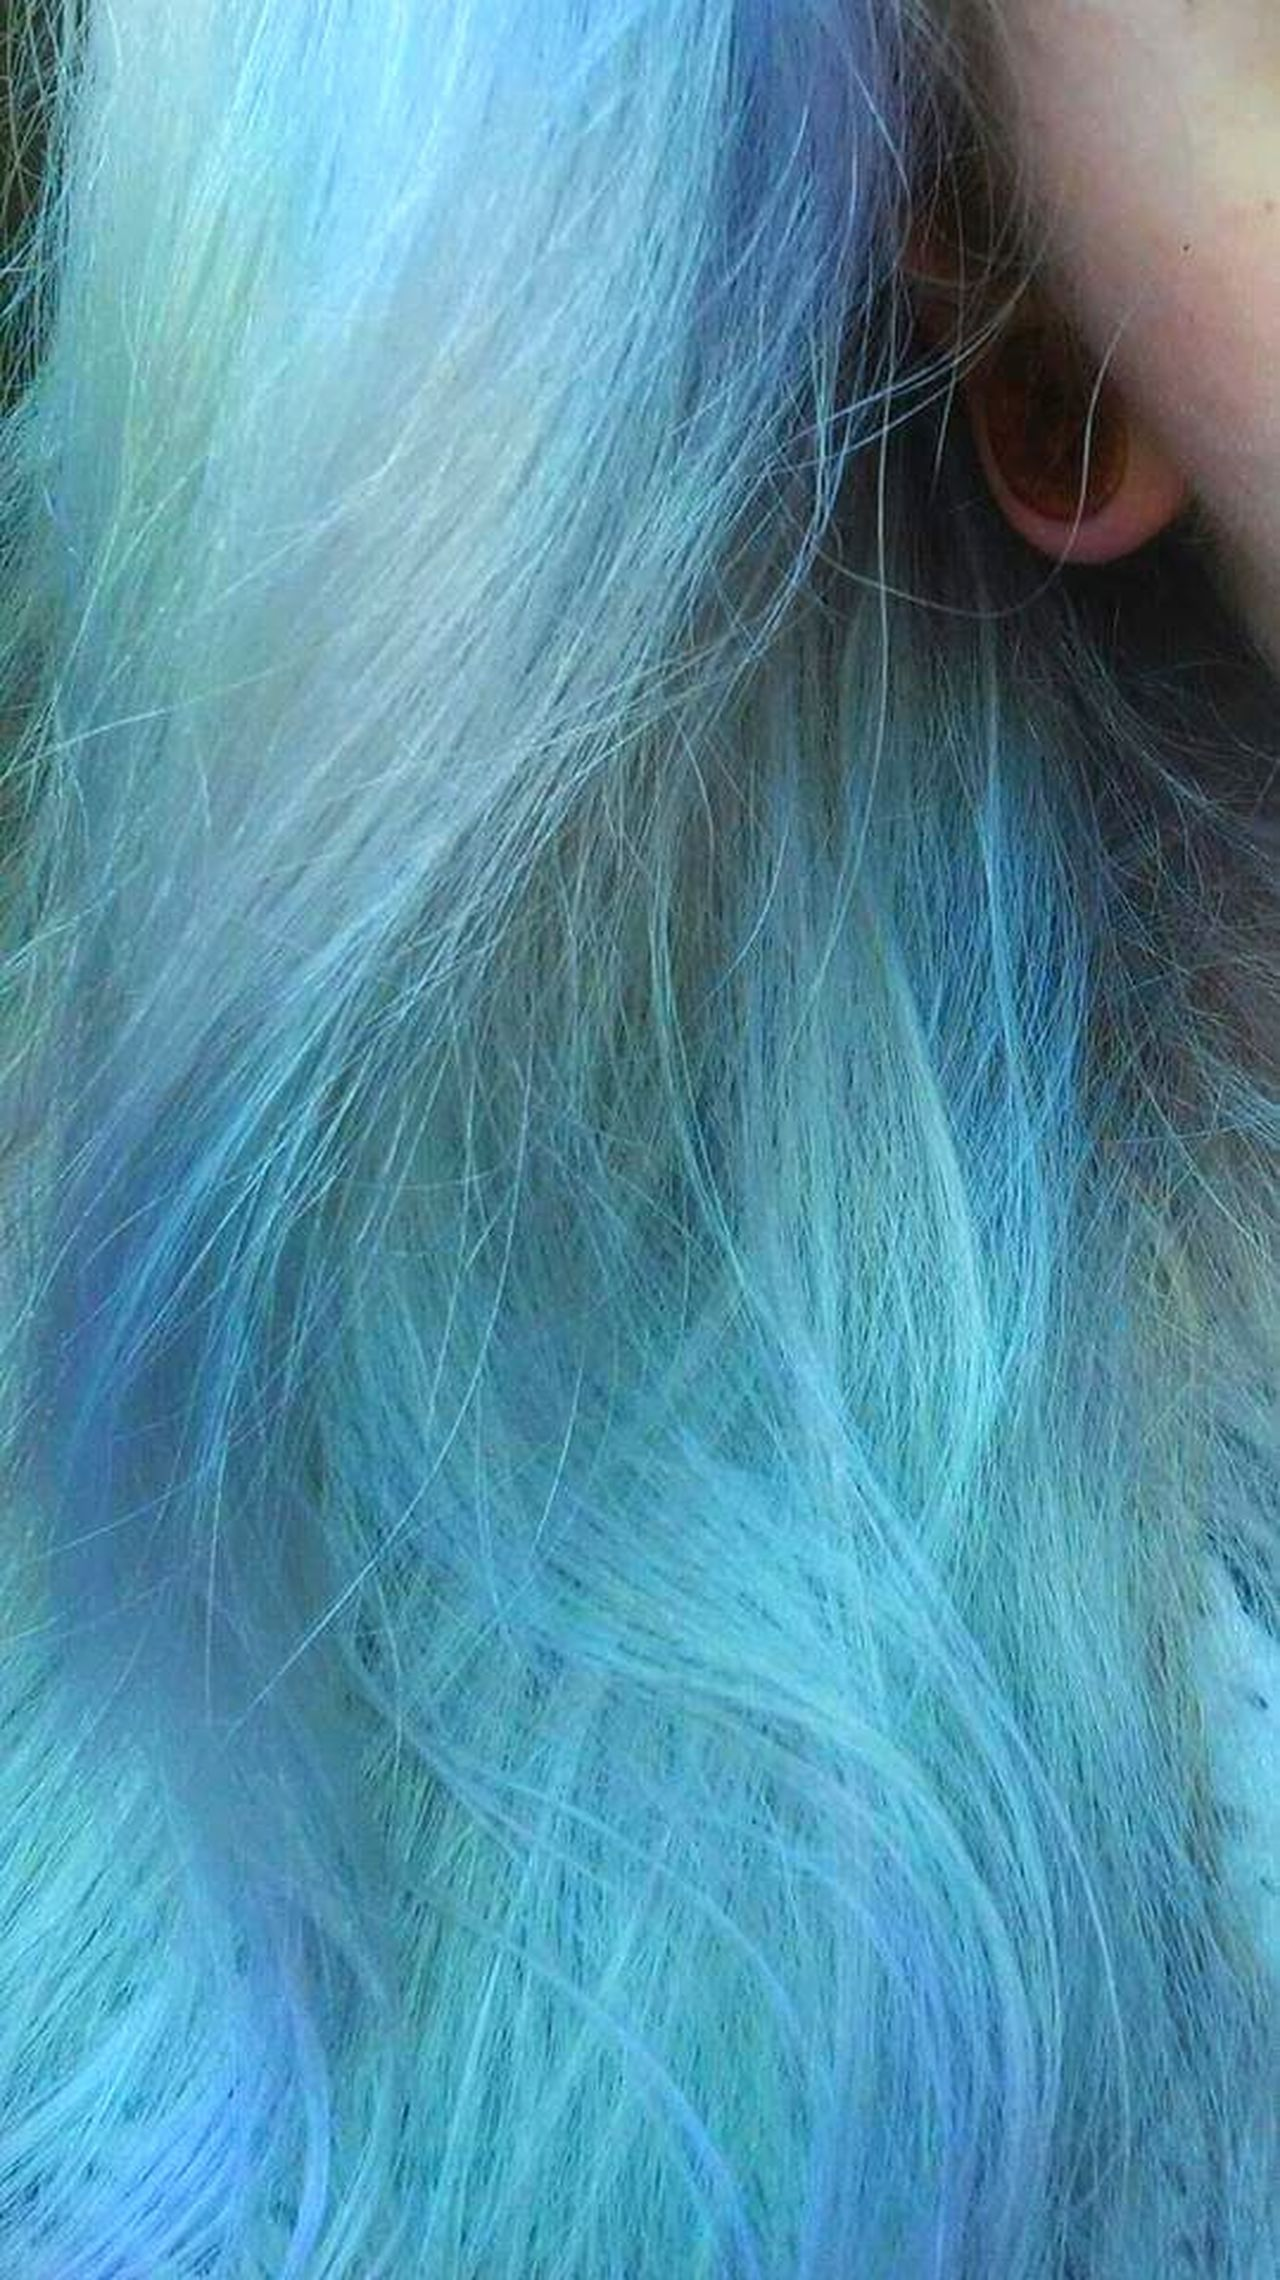 Longhair Coloredhair Blue Blue Hair Pastel Pastel Colors Haircolor Hairstyle Plug Plugs Girlswithplugs Like4like Picoftheday Photooftheday Girl Woman Saturday Weekend Alternative Girl Metalhead One Person Dyed Hair Only Women Human Hair Colorful